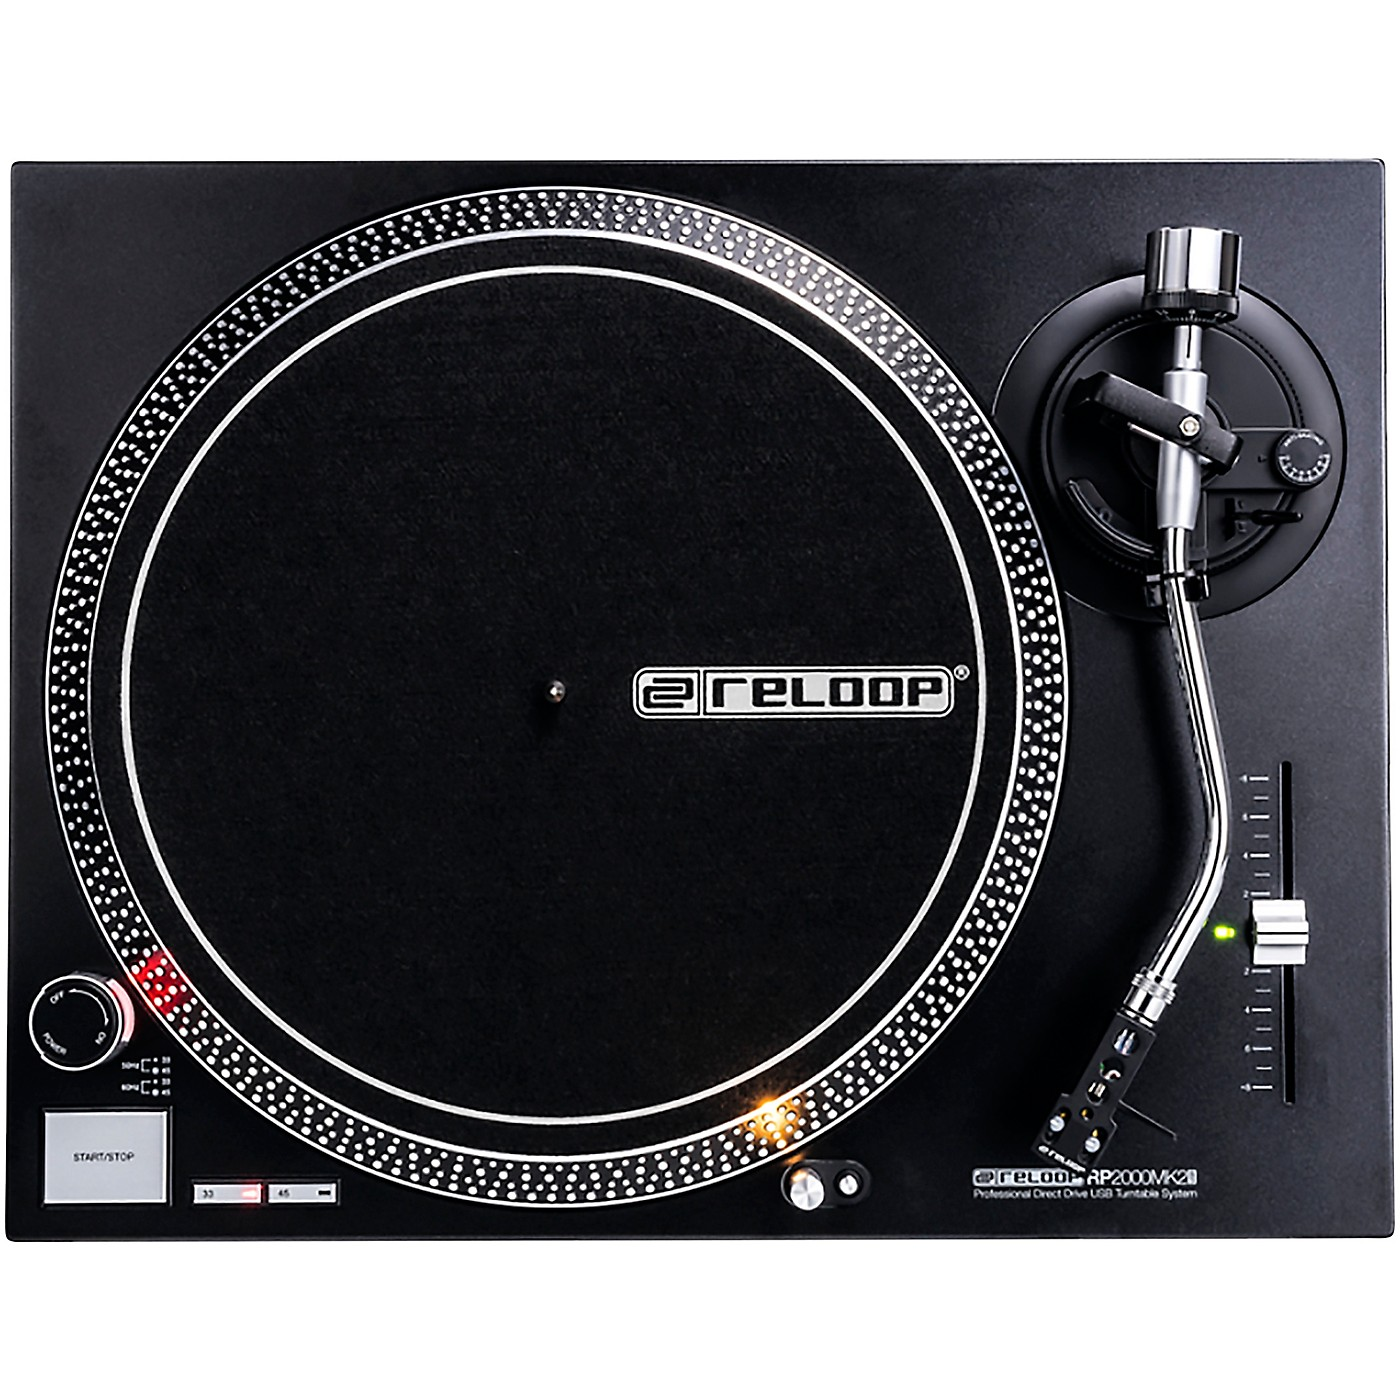 Reloop RP-2000 USB MK2 USB Direct-Drive Turntable thumbnail